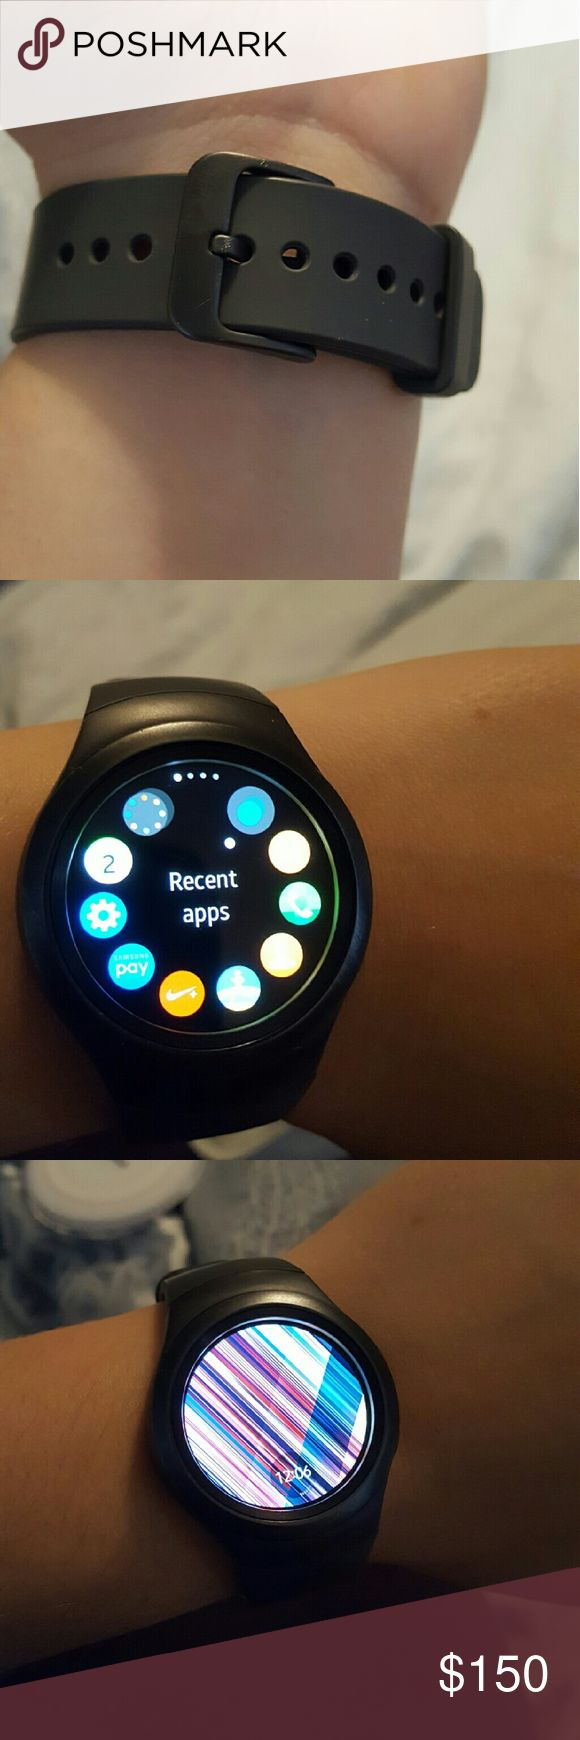 Samsung Galaxy Gear 2 smart watch NWOT Black gear 2 watch, works great and looks flawless. Charger Included. samsung Other